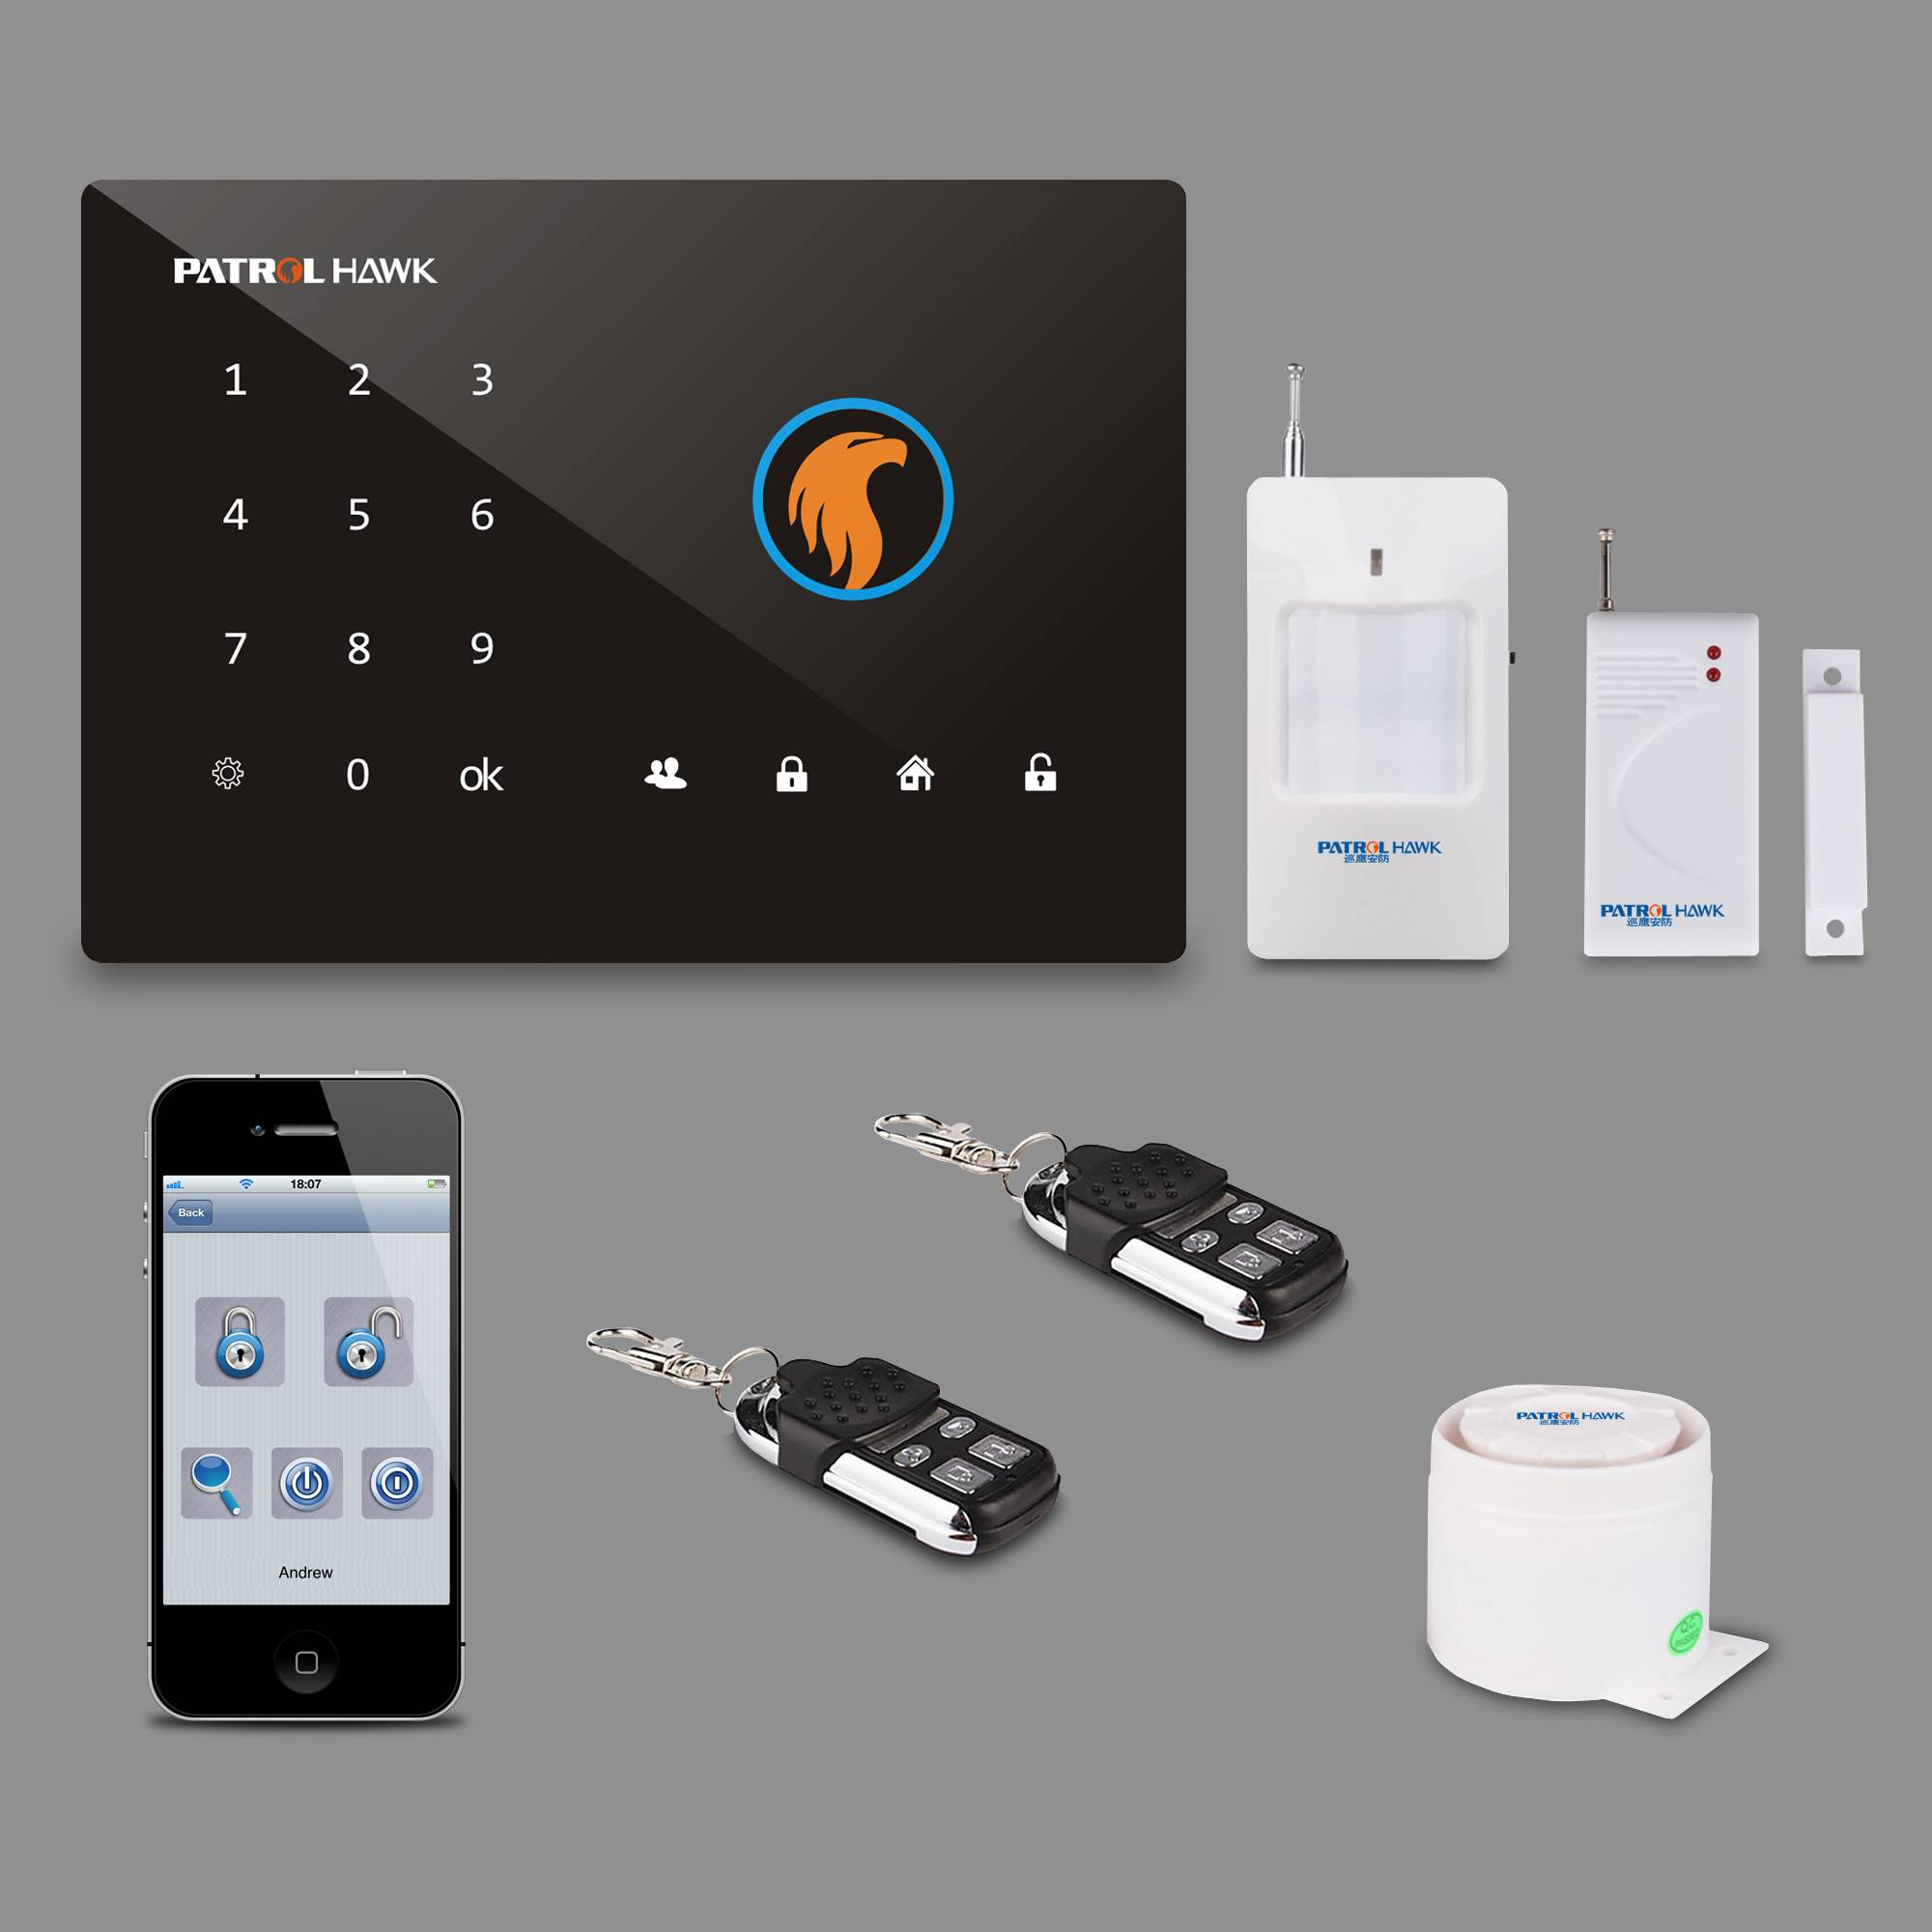 Patrol Hawk Smart Touch Keypad Home Alarm System & Andriod/ios App control, protect your home safety